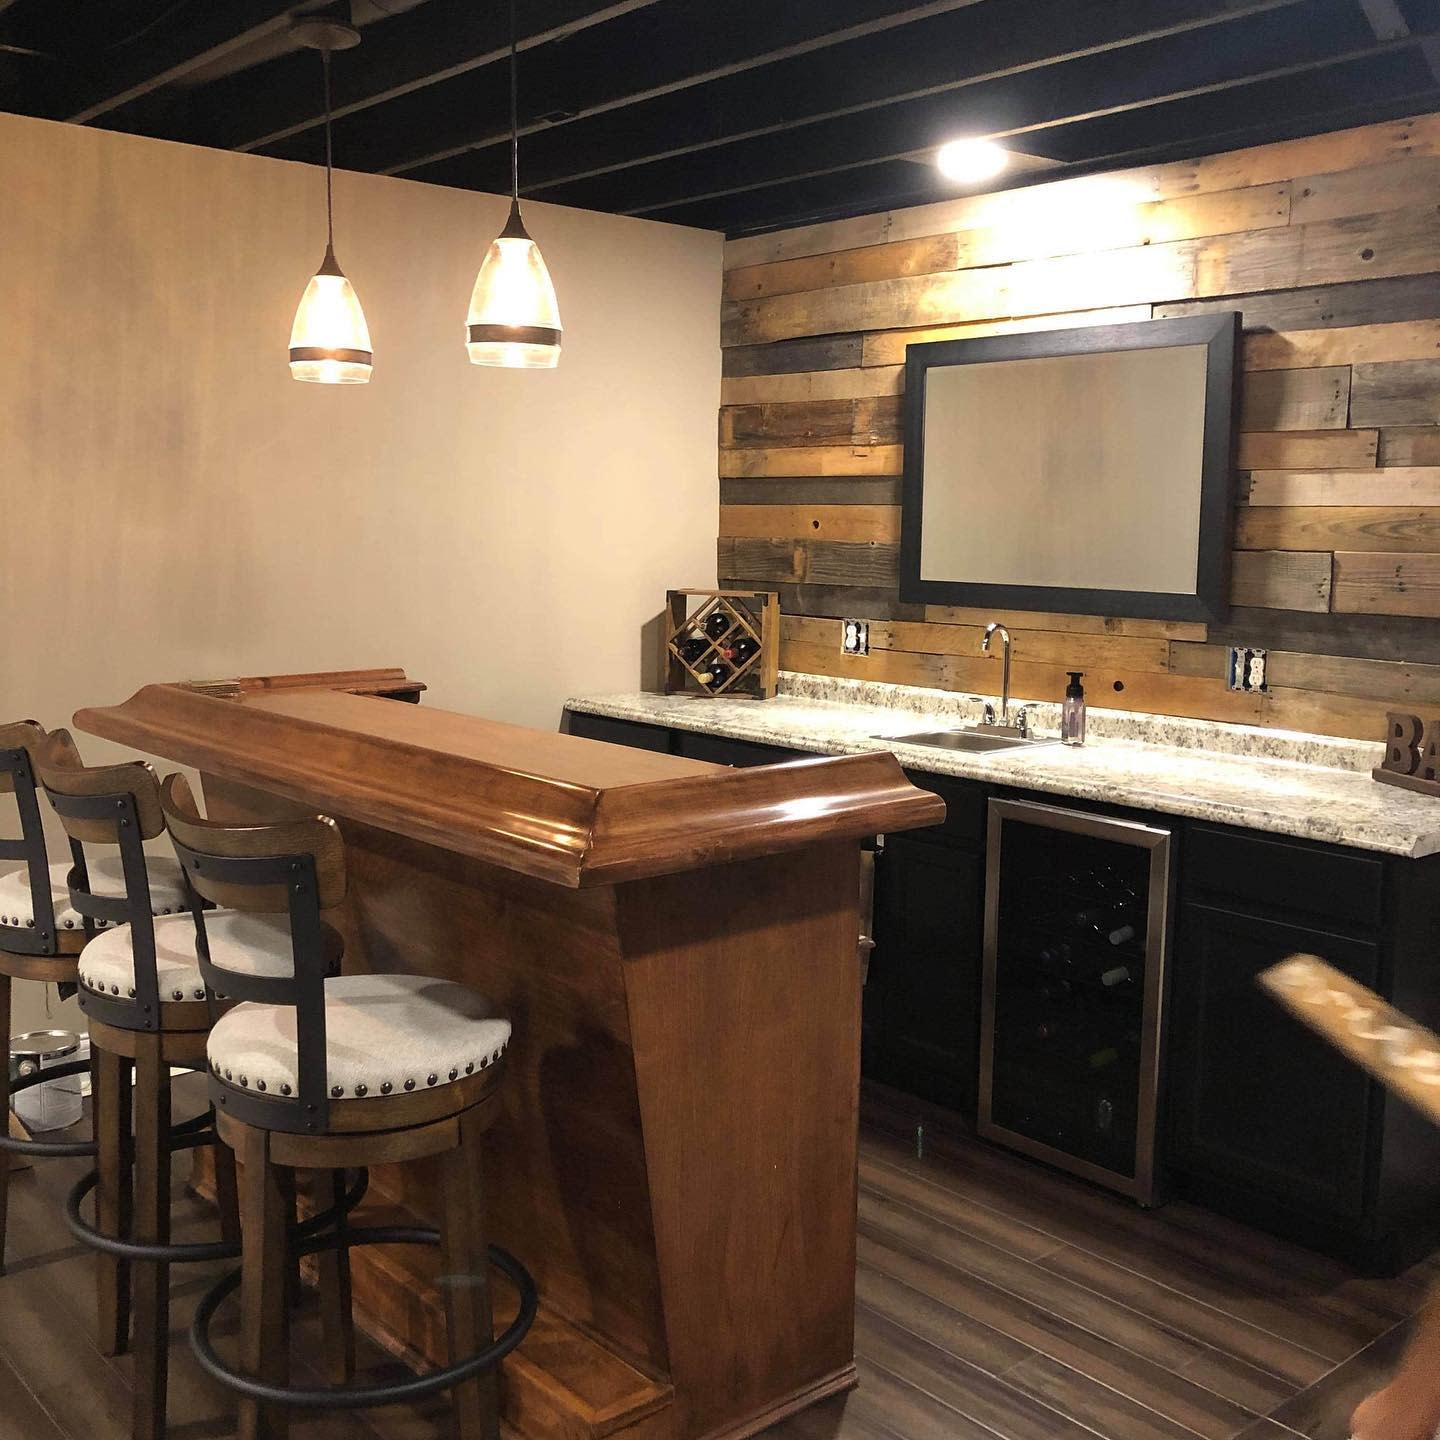 Bar Pallet Wall Ideas 2 -redfoxreclaiming